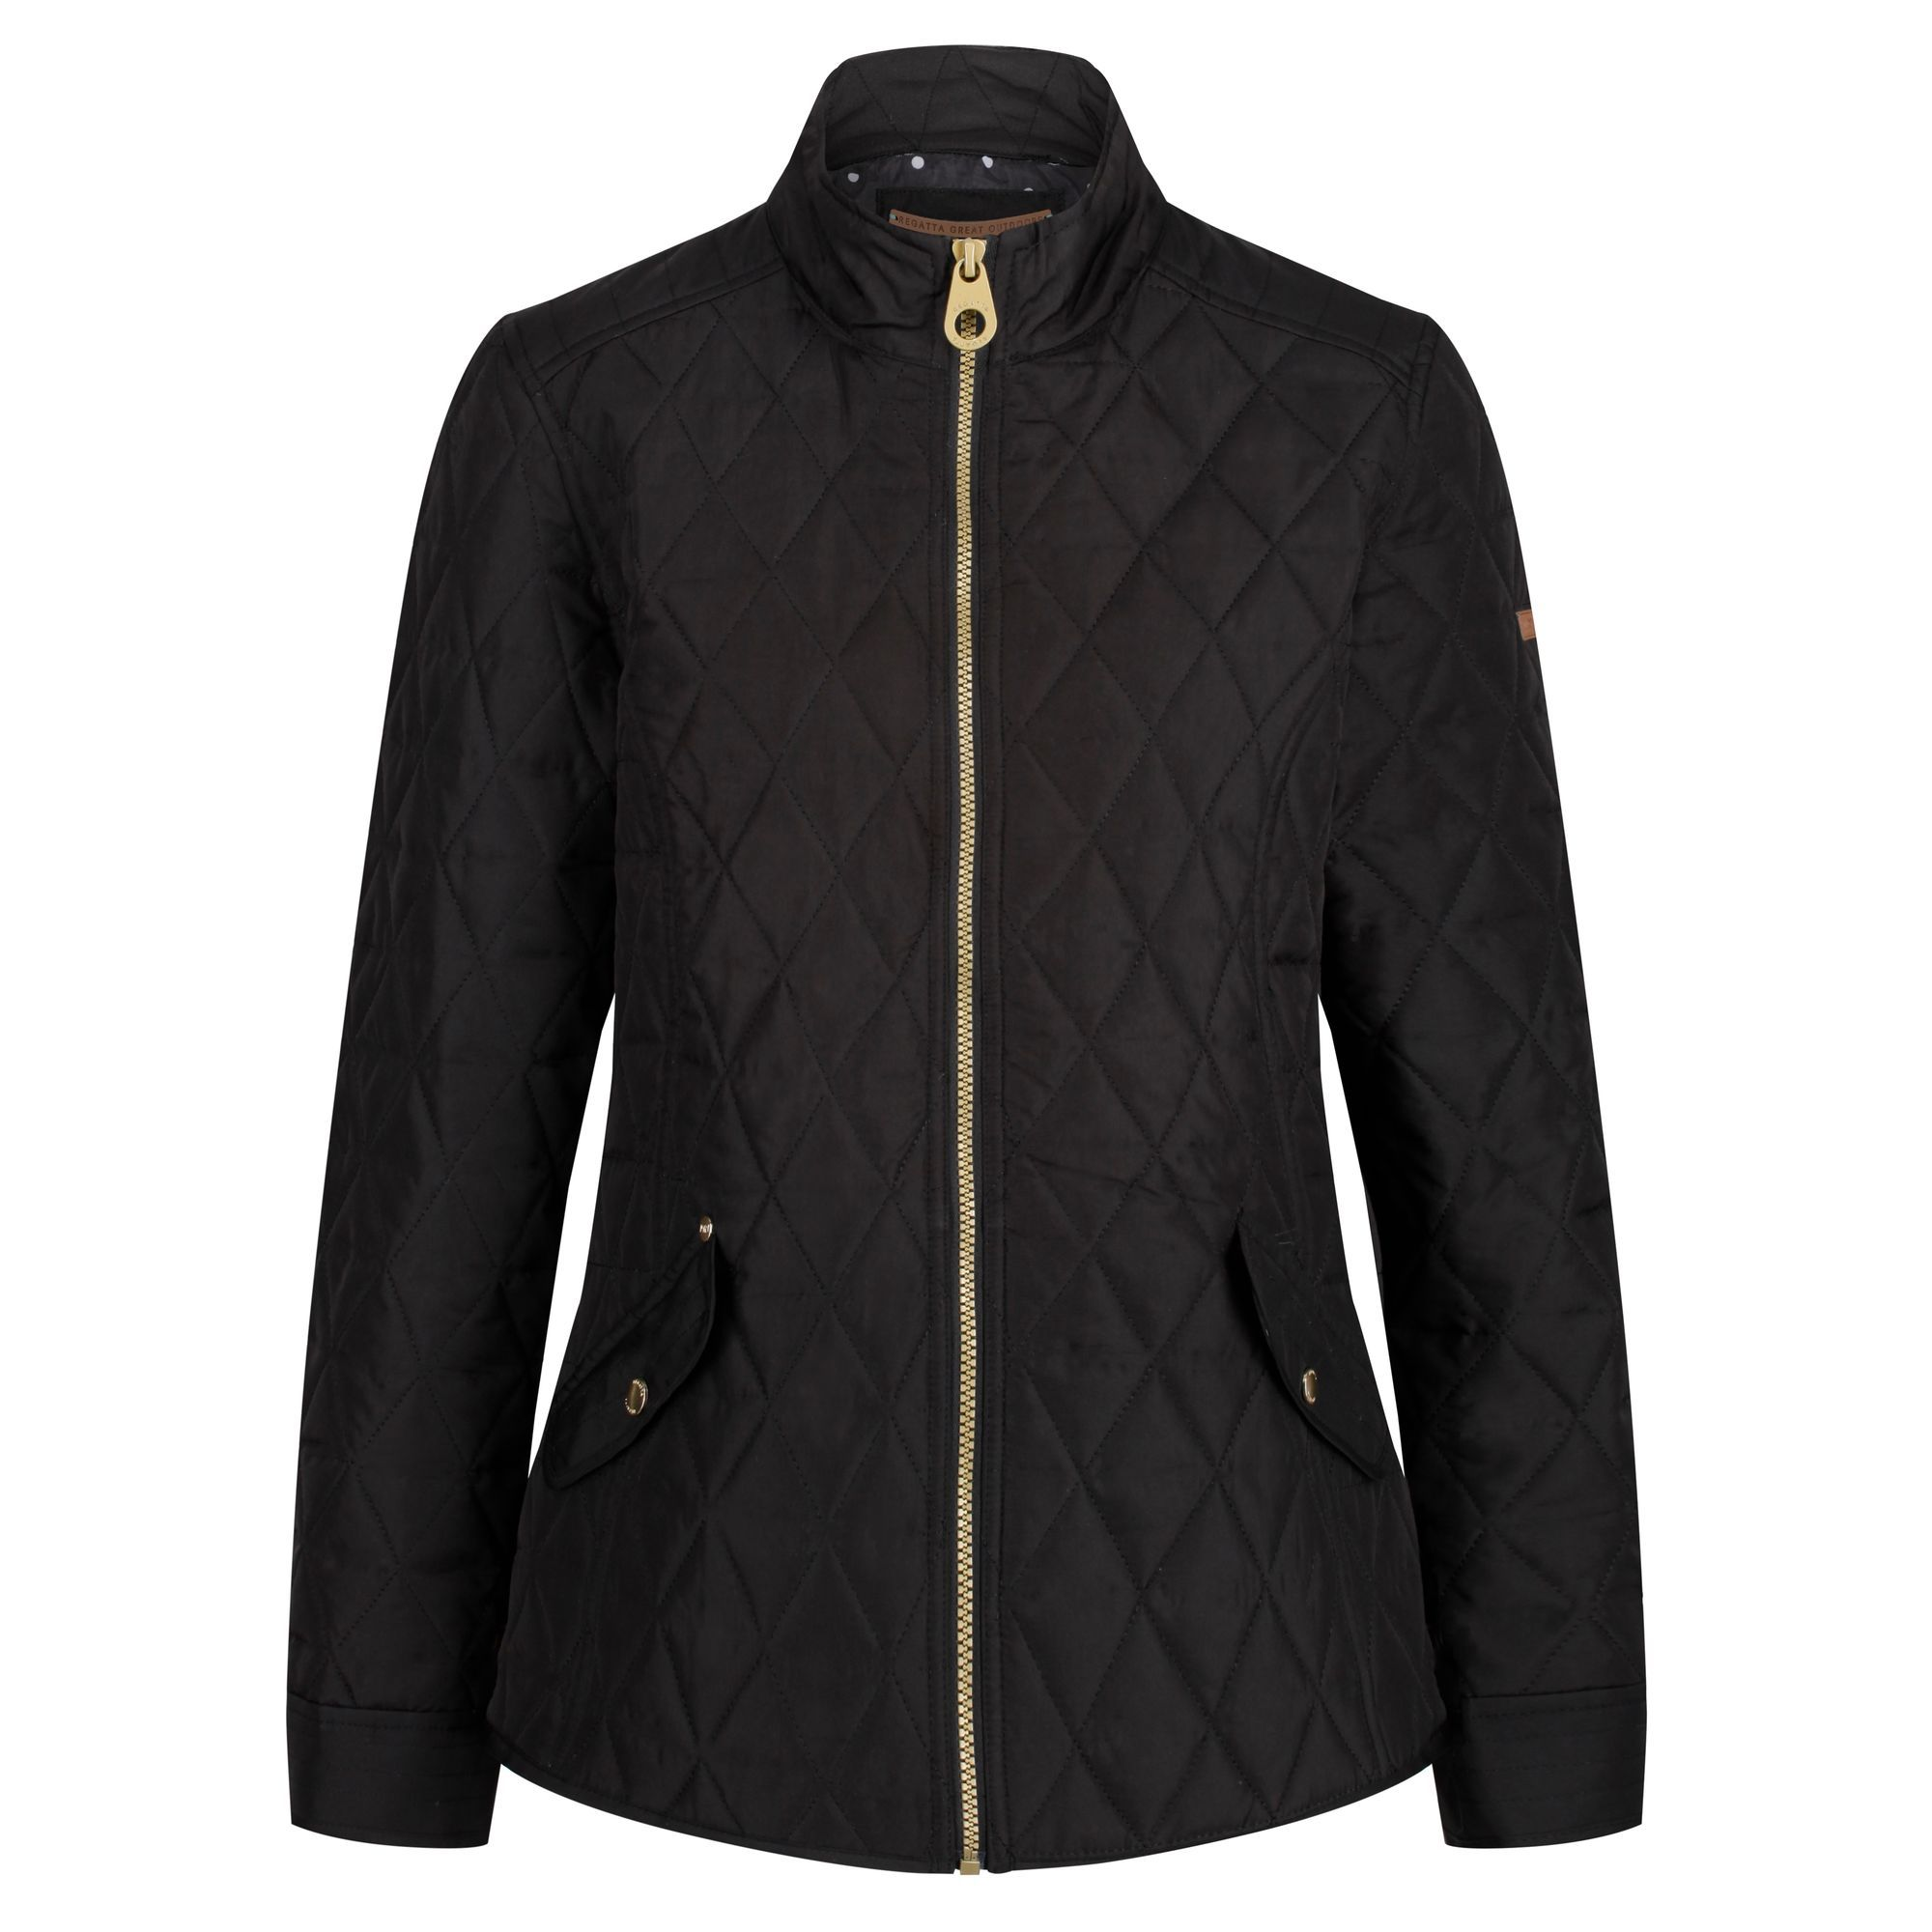 Regatta-Women-039-s-Cressida-Puffer-Padded-Quilted-Insulated-Jacket-RRP-70 thumbnail 4